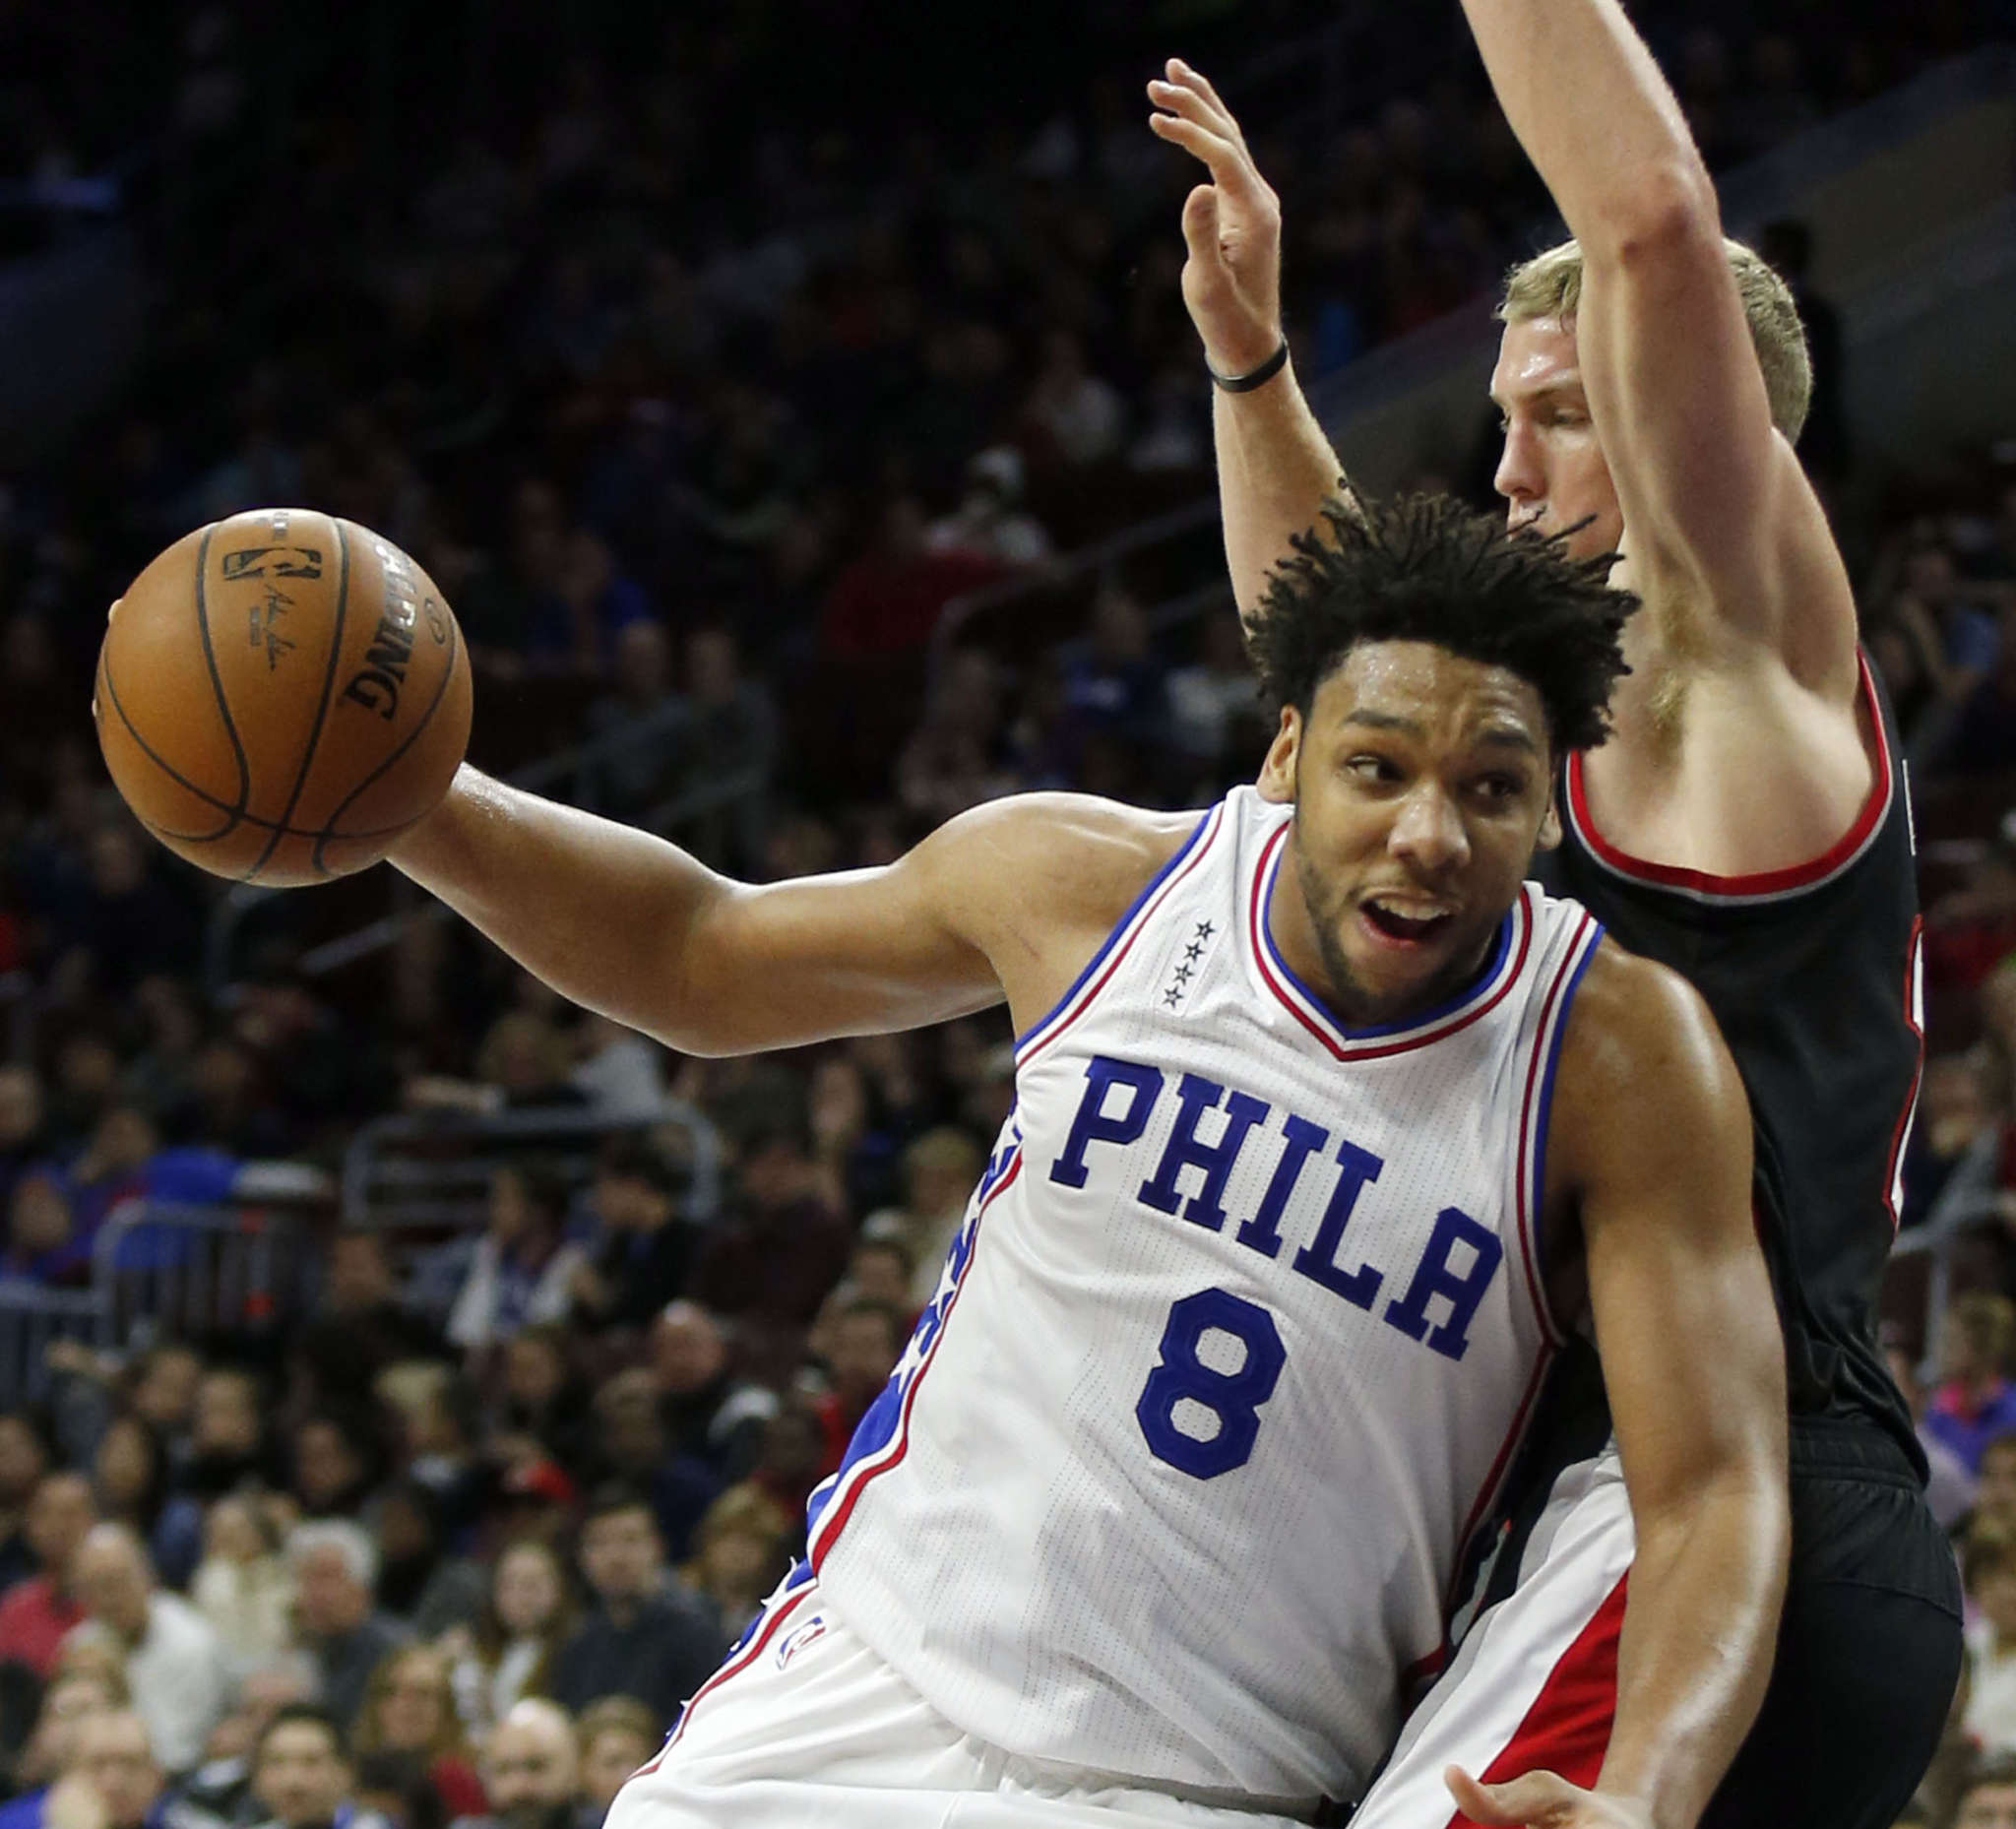 Jahlil Okafor driving against the Blazers´ Mason Plumlee. Okafor is an offensive threat down low but shoots just 39 percent when he´s more than three feet from the hoop. He has become a defensive liability for the Sixers. YONG KIM /Staff Photographer